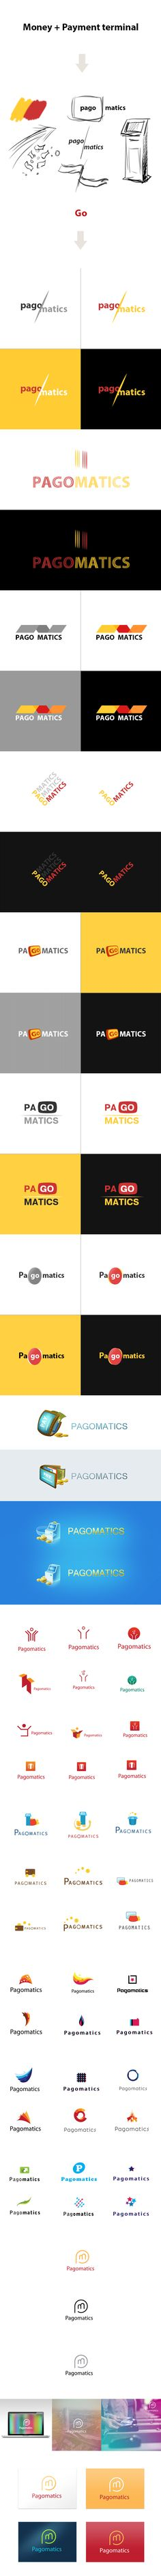 Pagomatics by Alex Martinov, via Behance